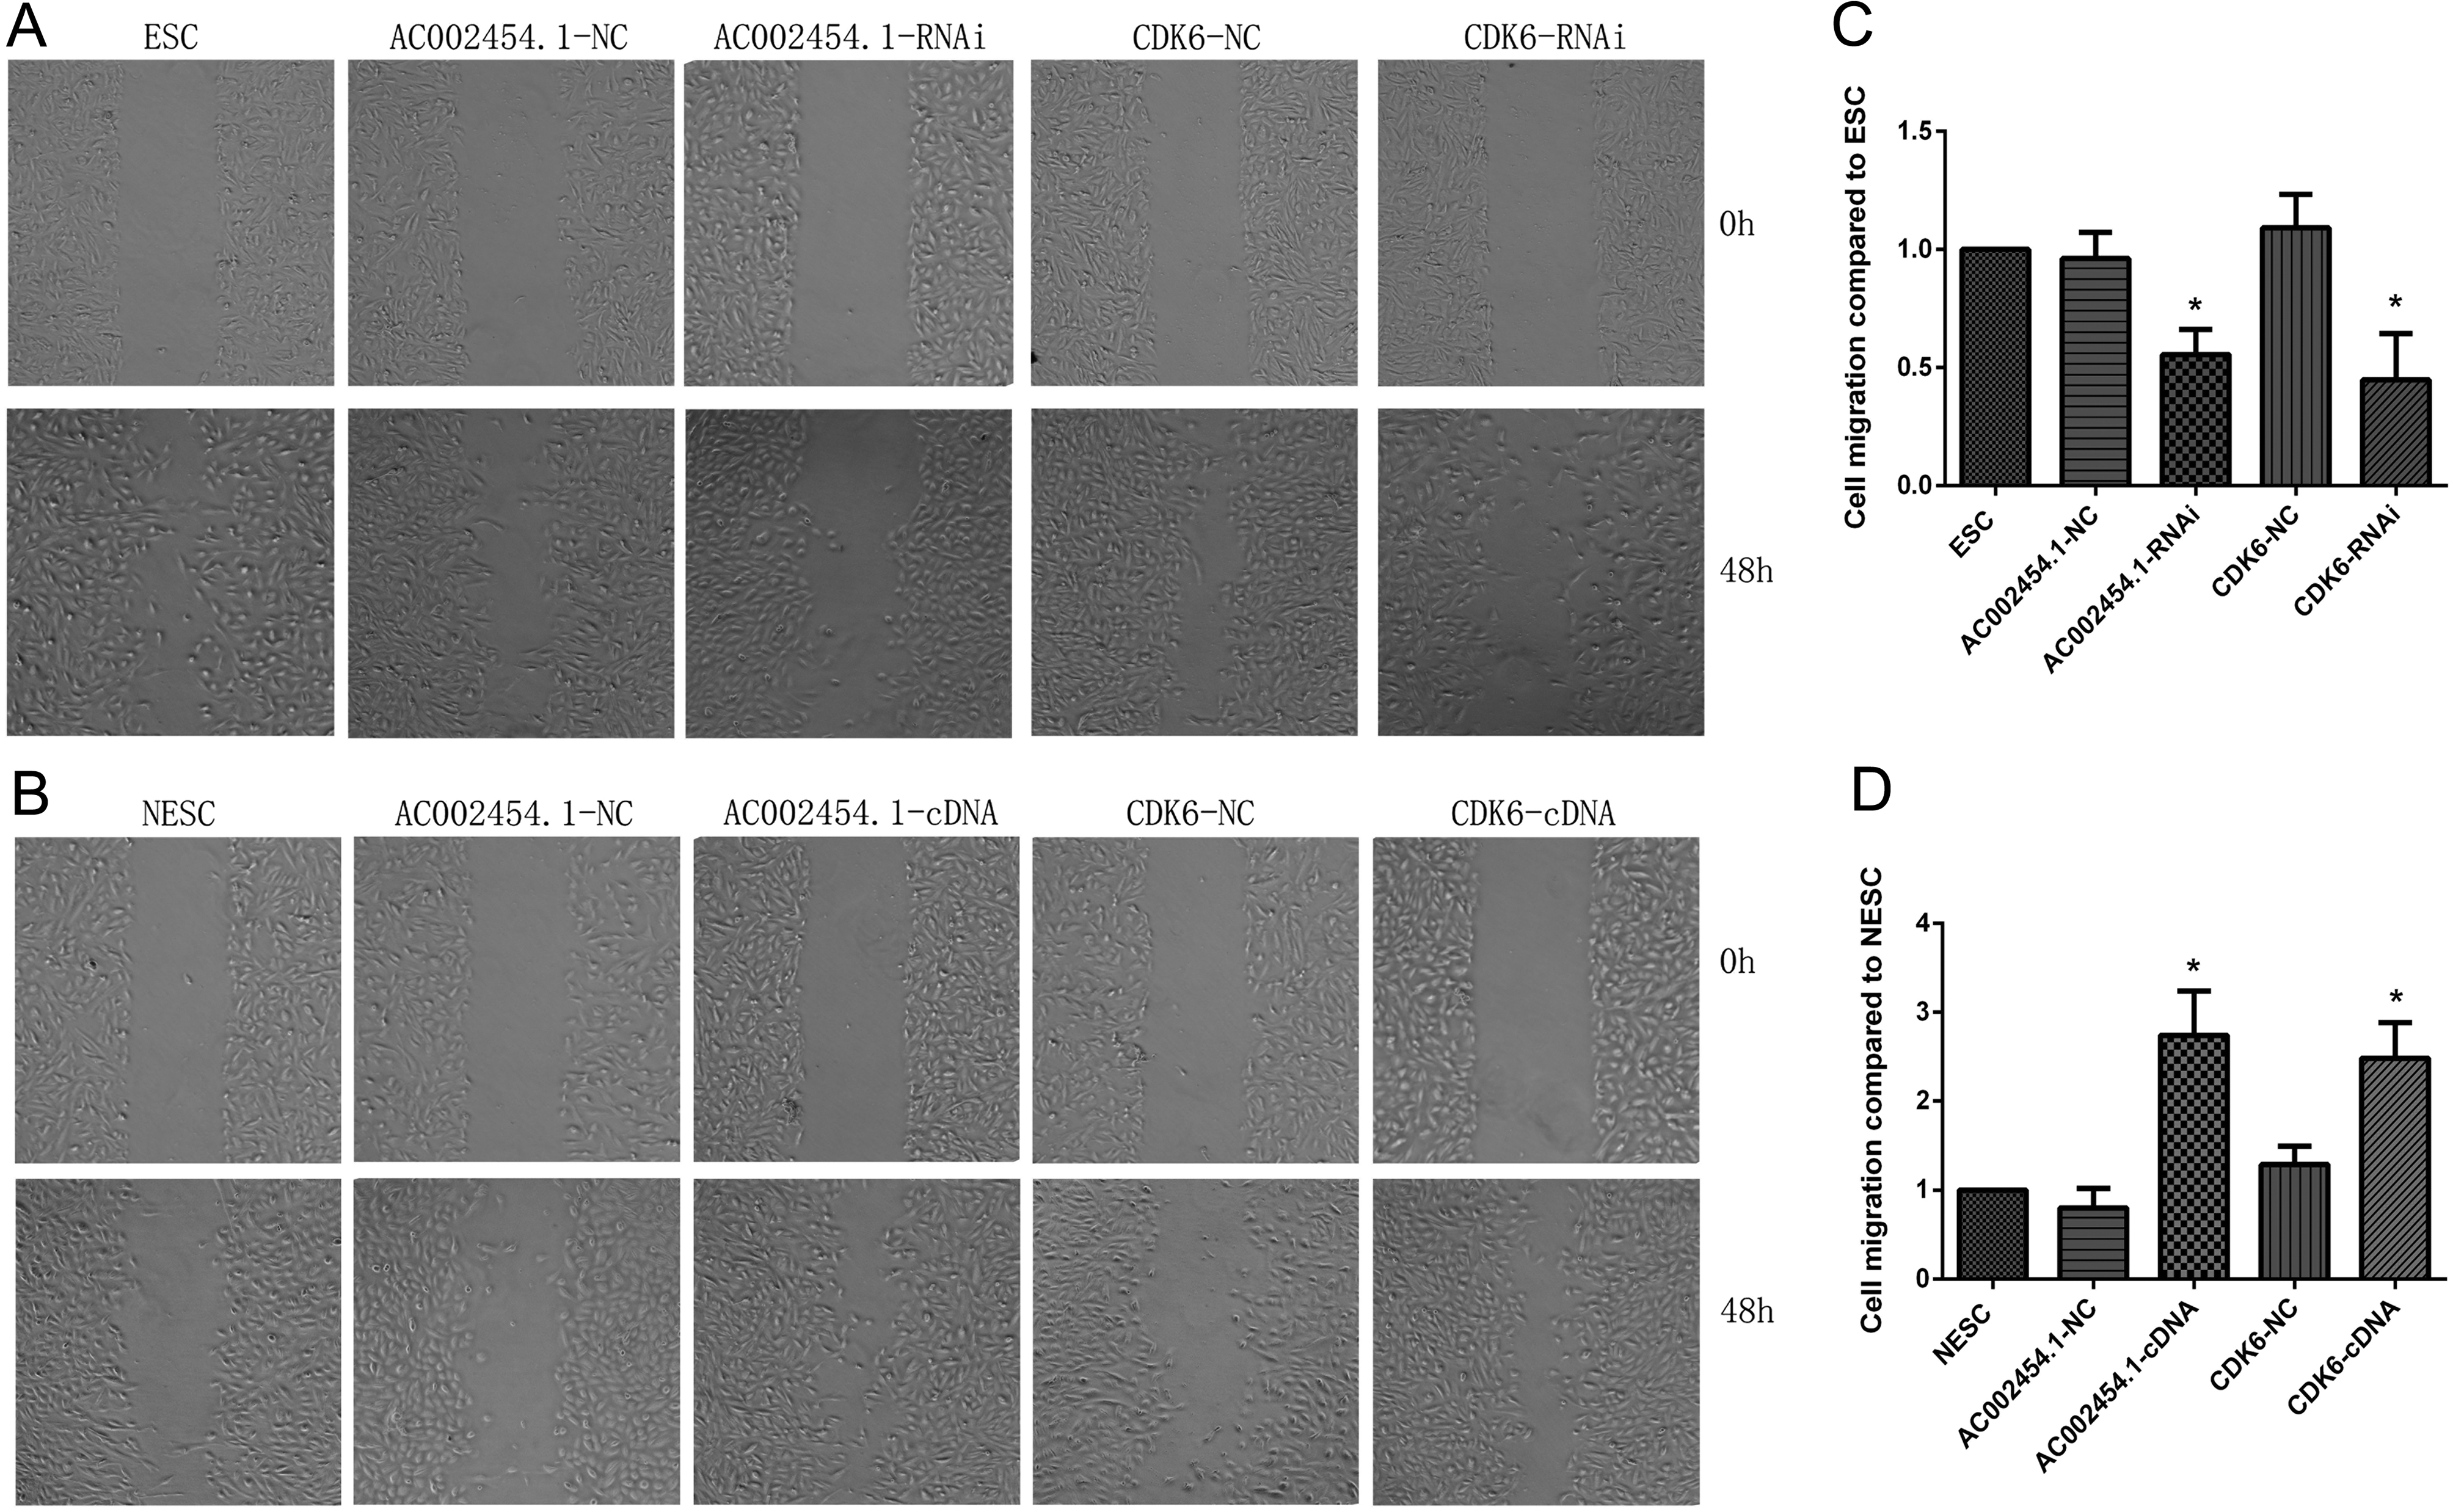 AC002454 1 and CDK6 synergistically promote endometrial cell